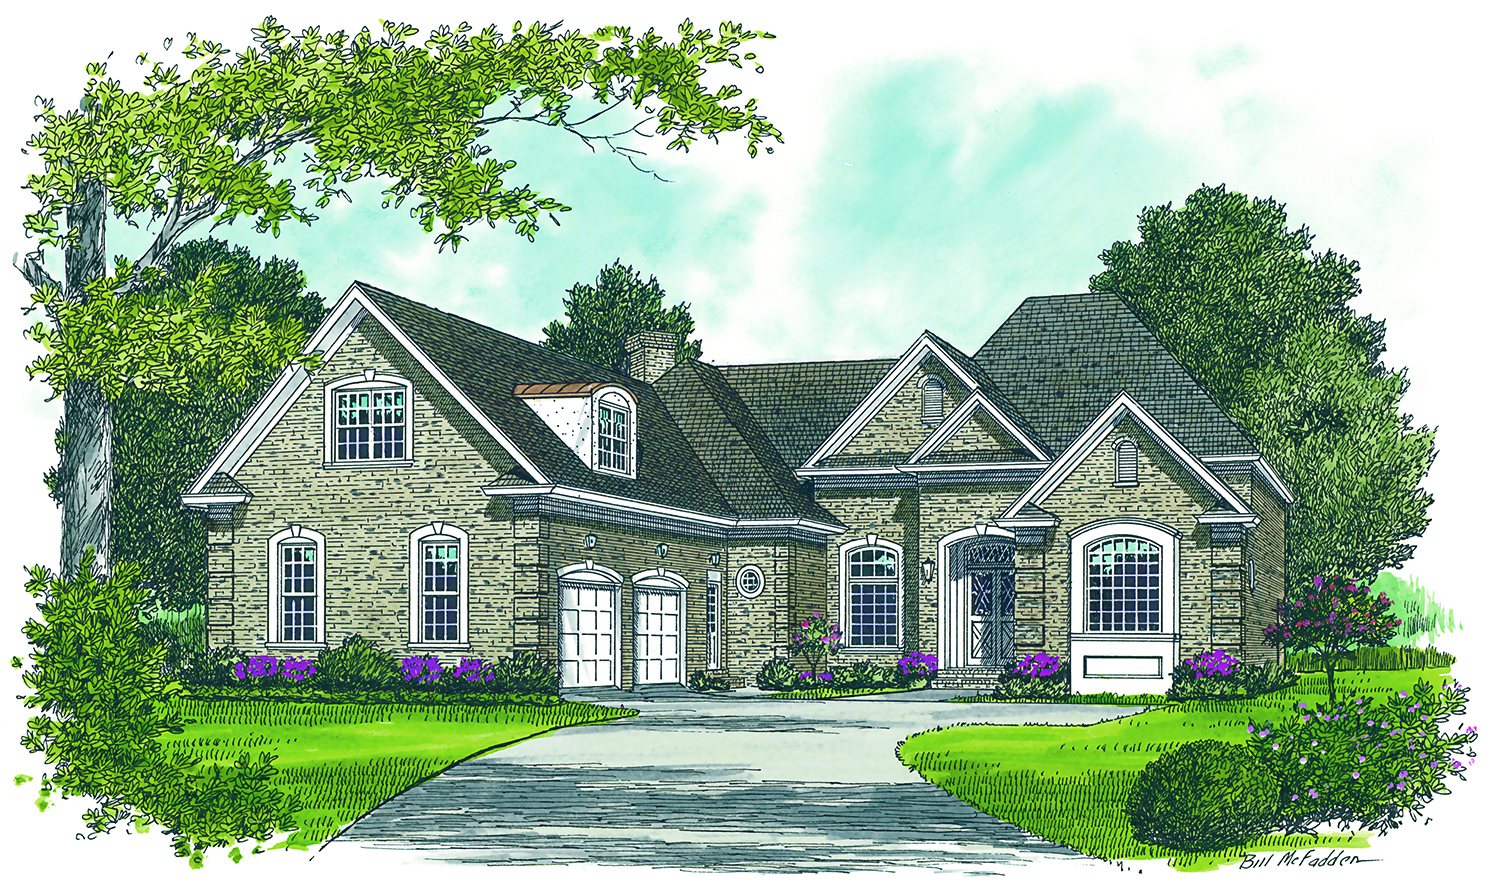 2700 sq ft ranch house plan 180 1011 3 bedrm home 2700 square foot house plans